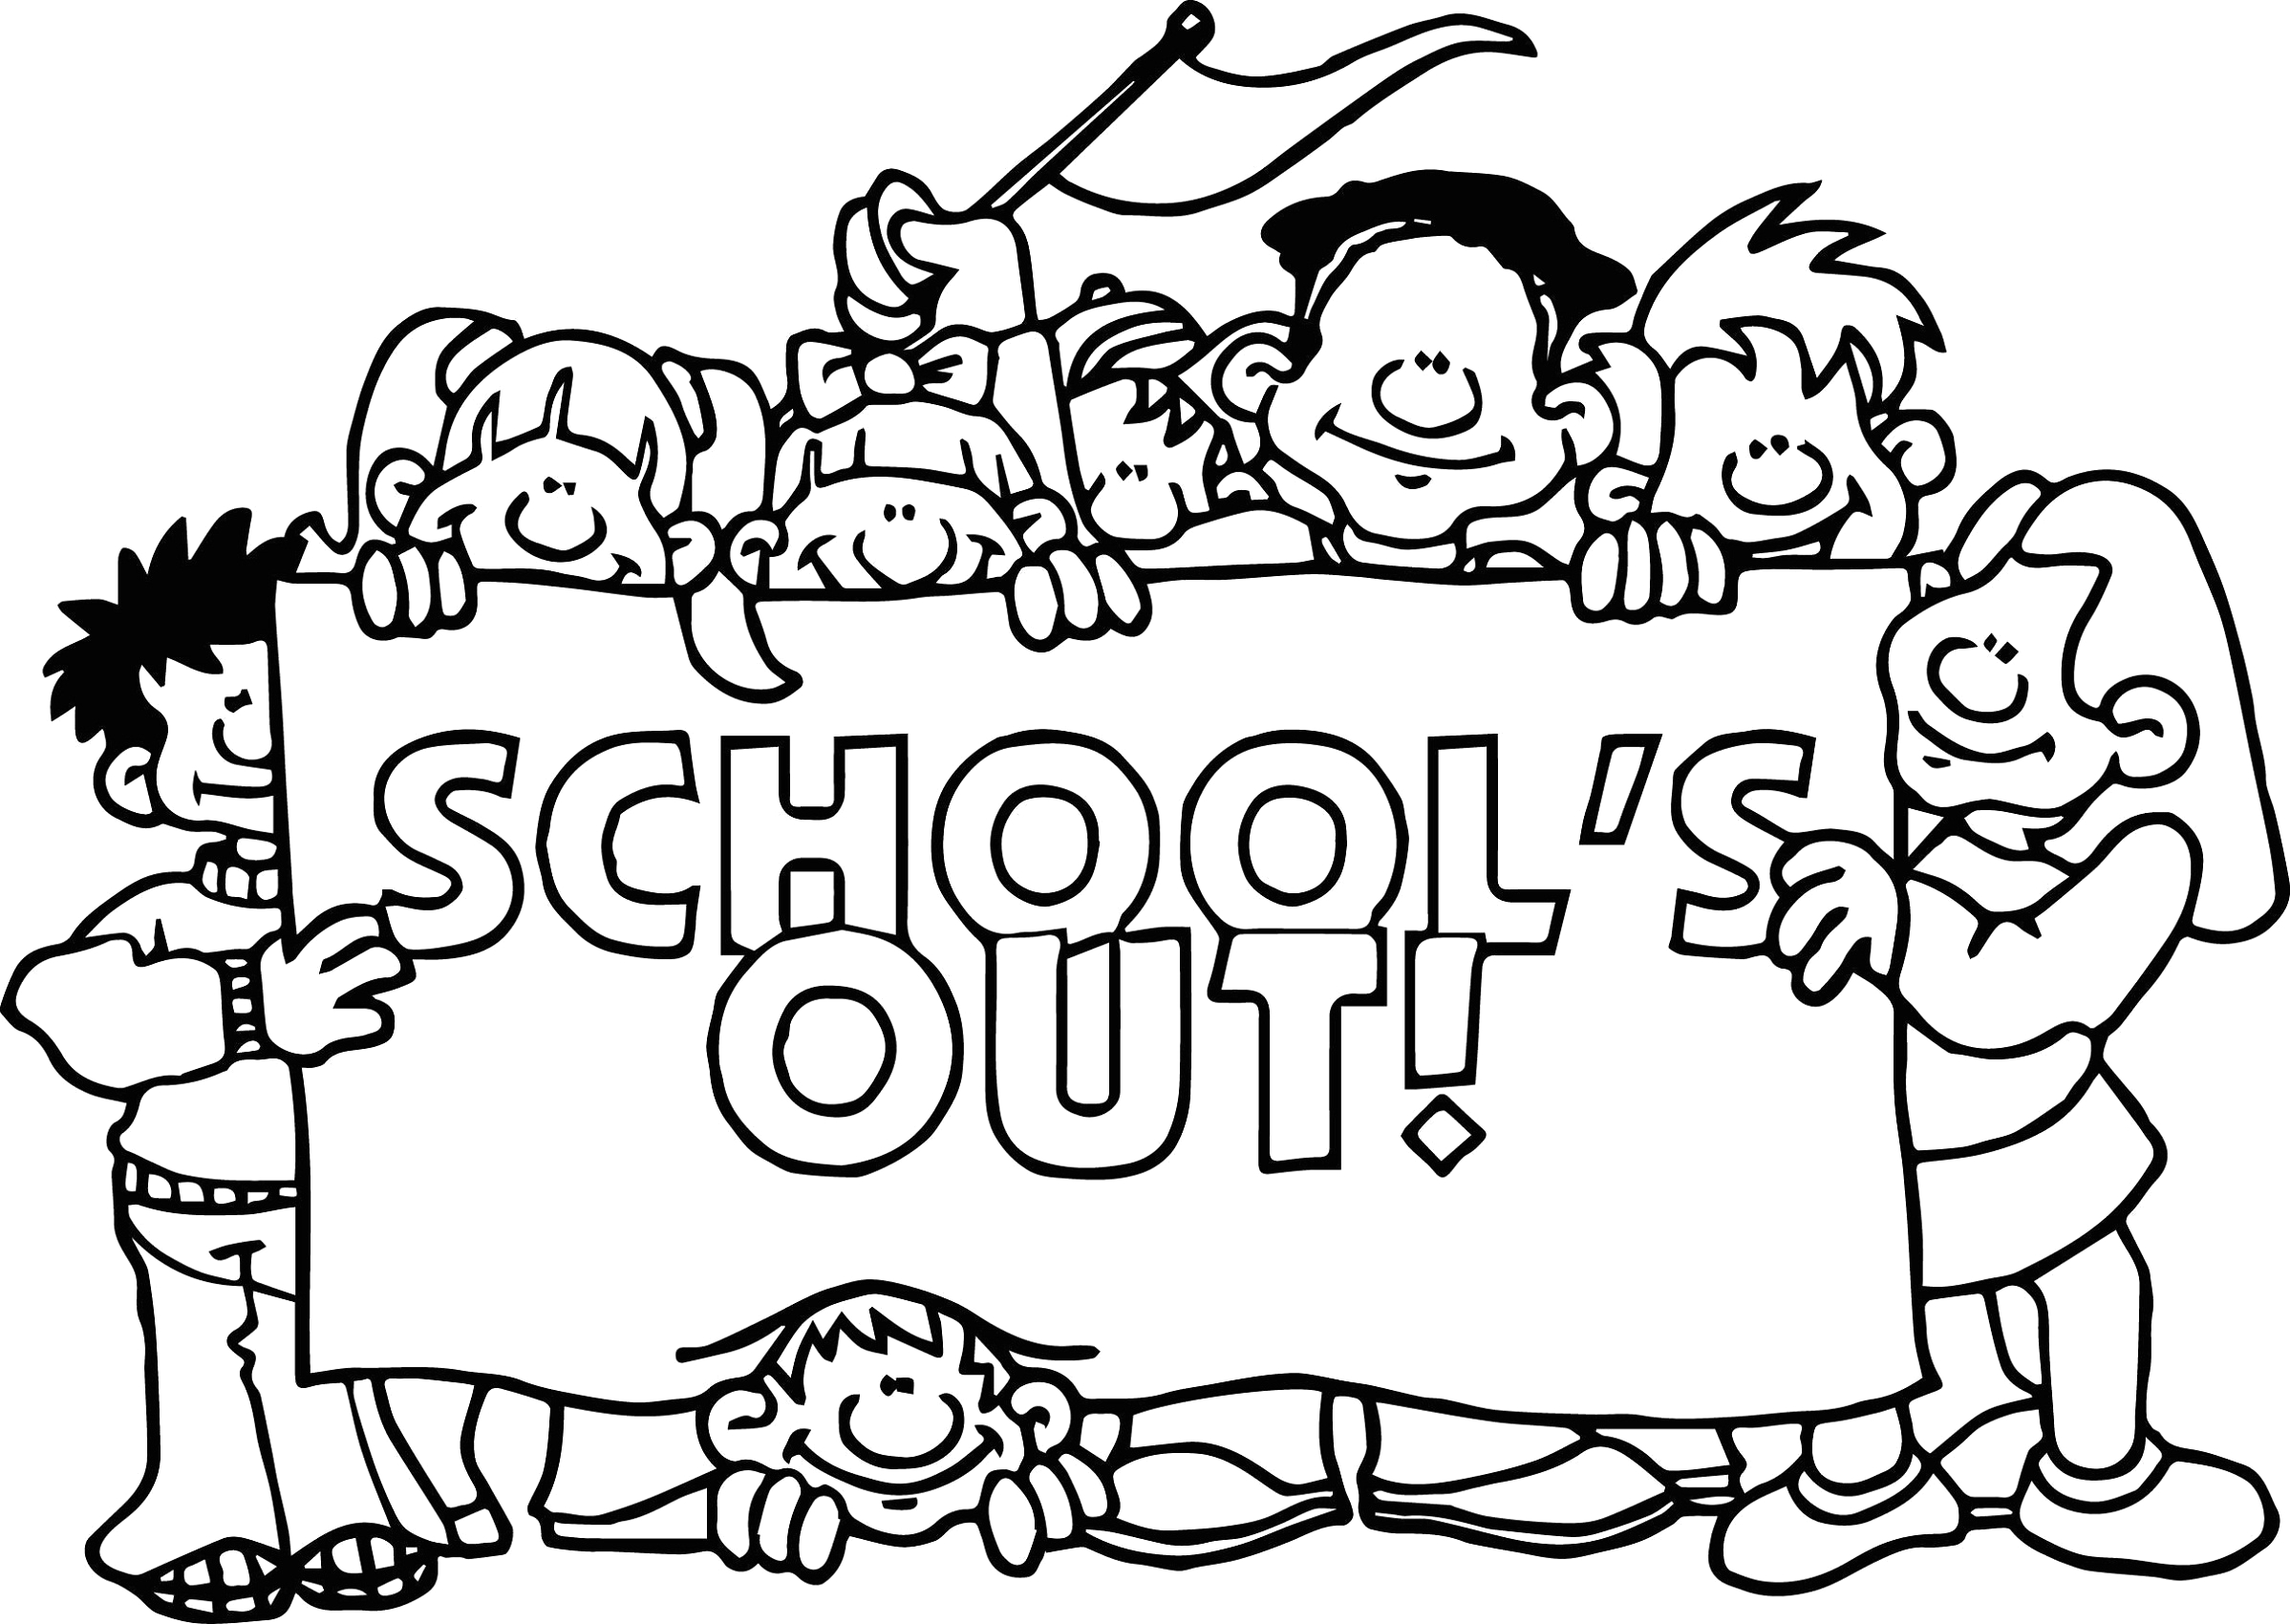 Last Day Of School Coloring Pages Printable Last Day Of School Coloring Pages